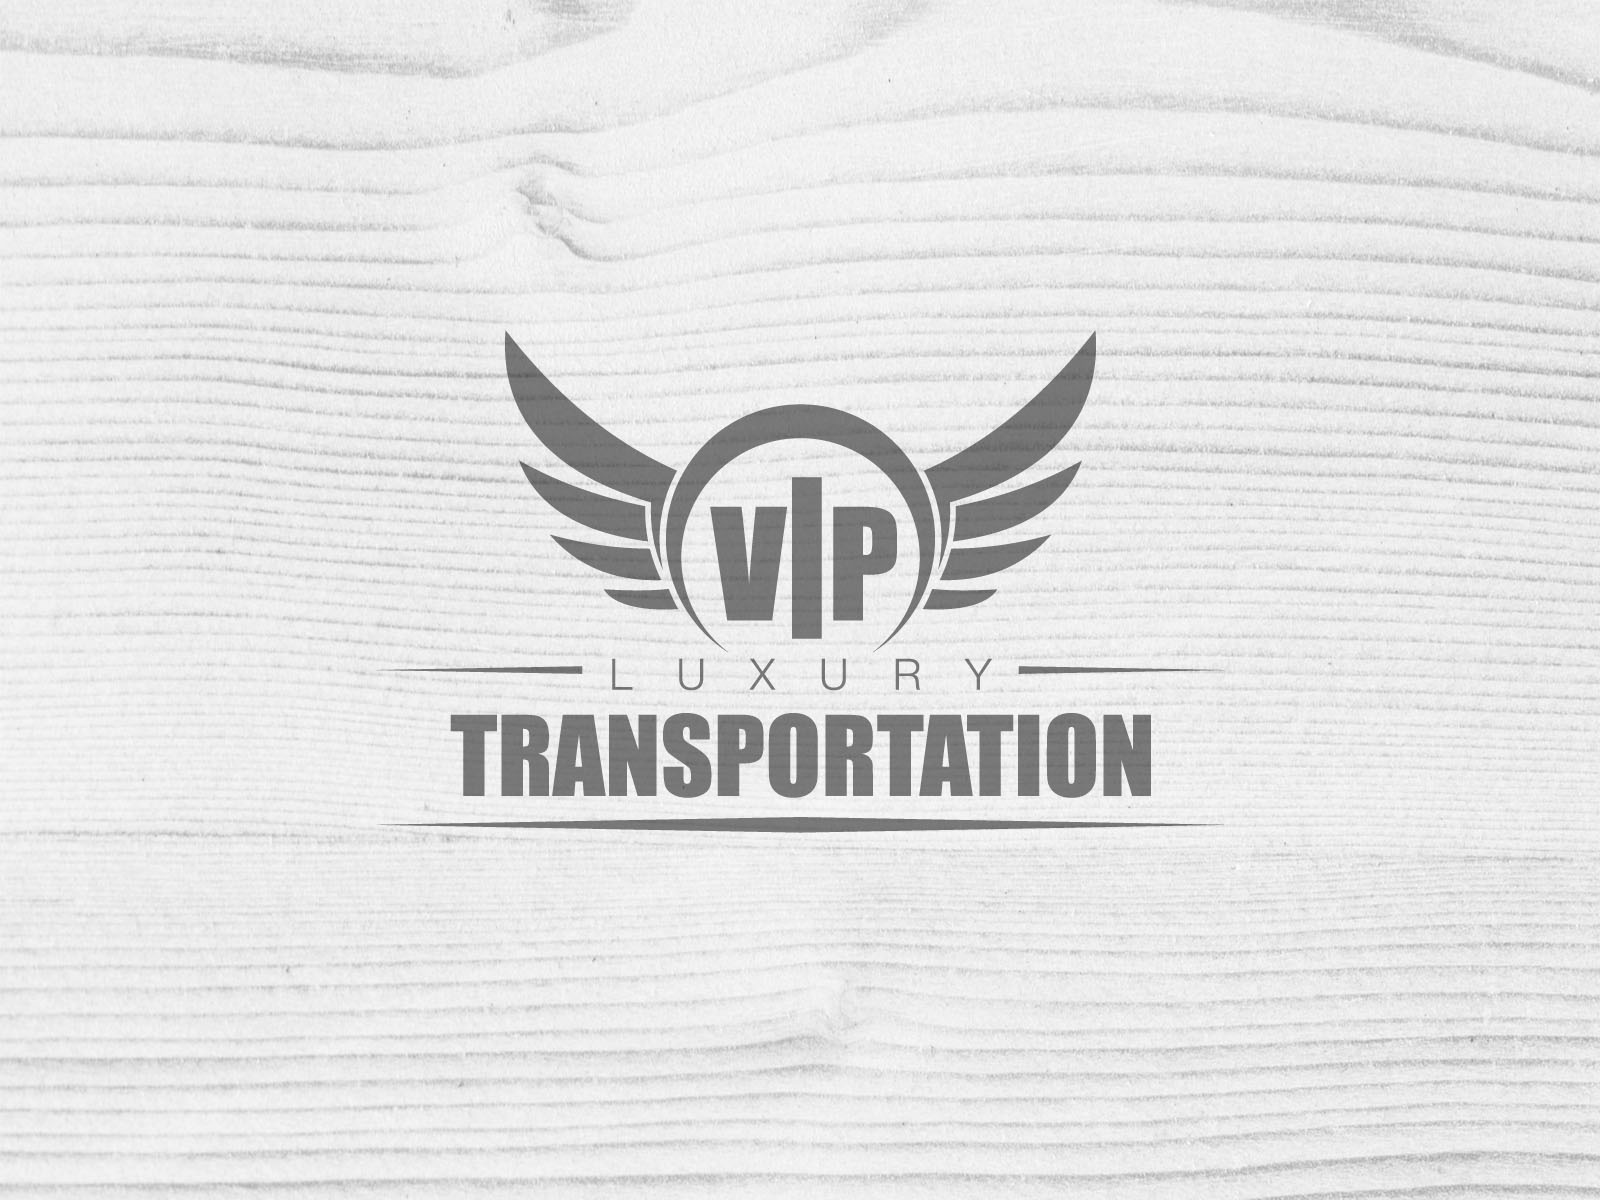 VIP Luxury Transport